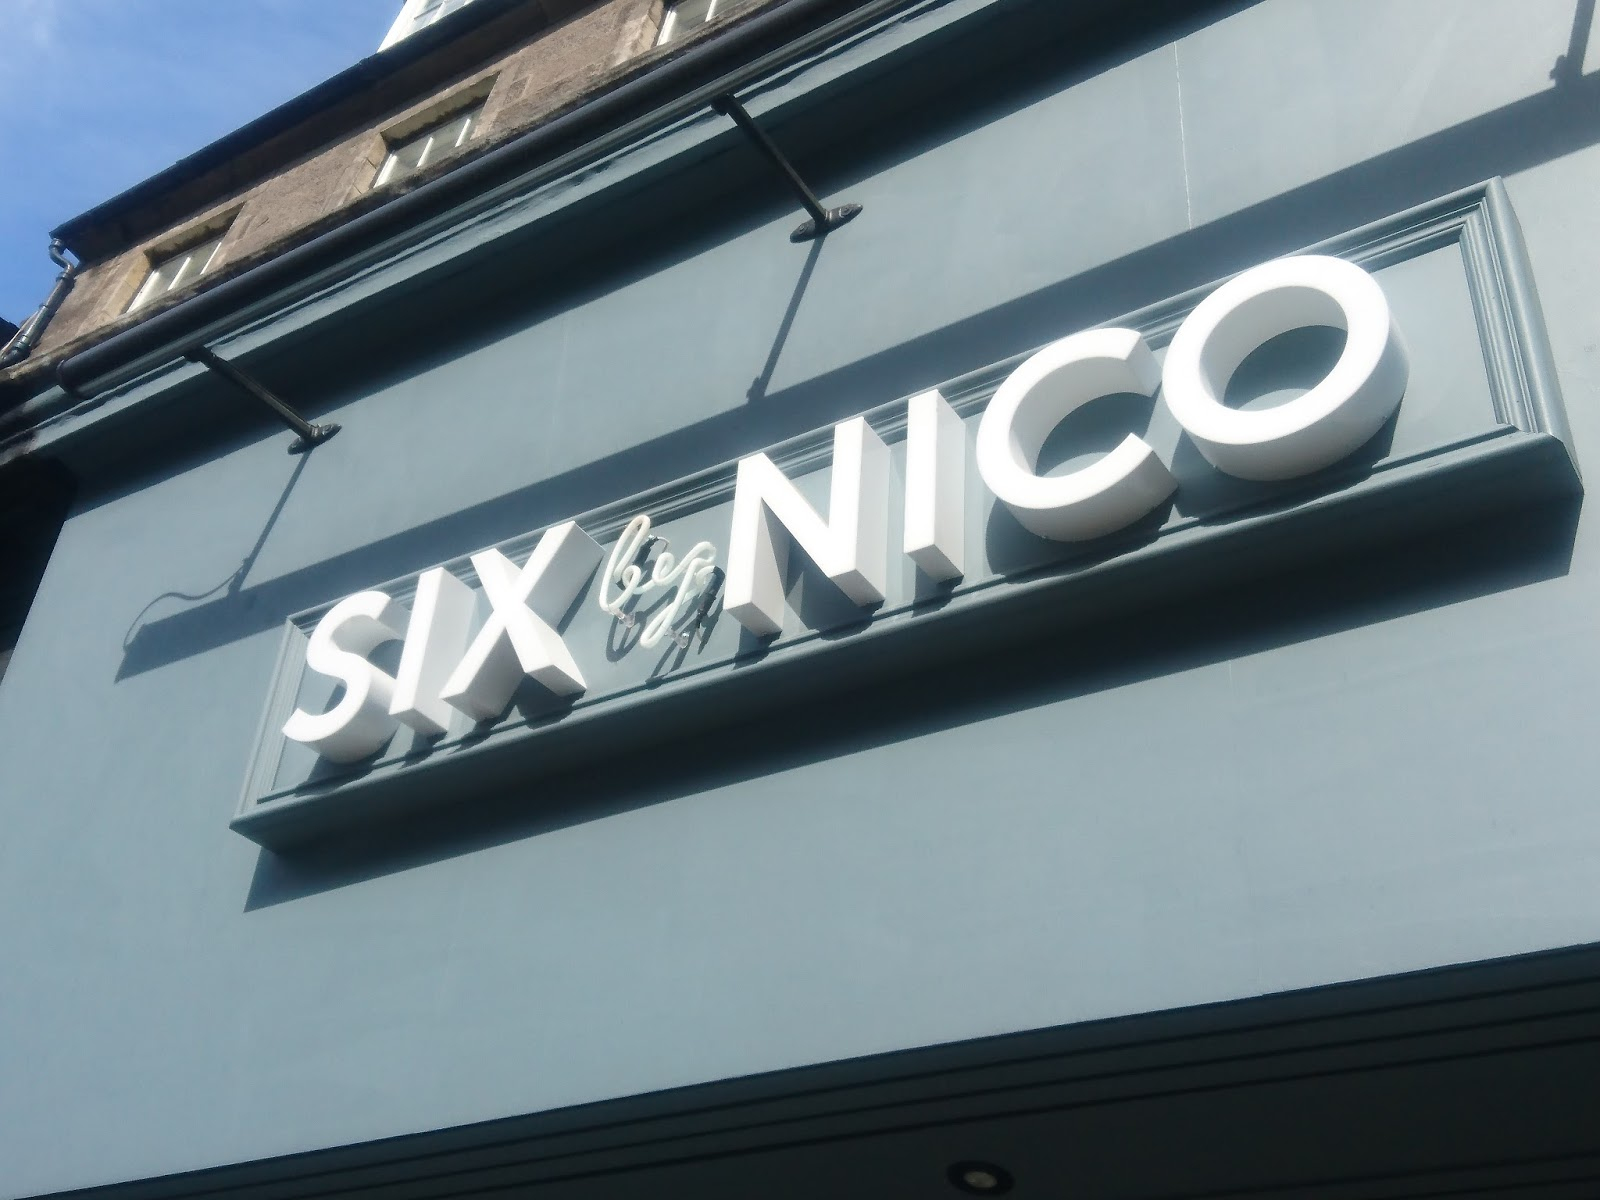 Review: Six by Nico, Edinburgh